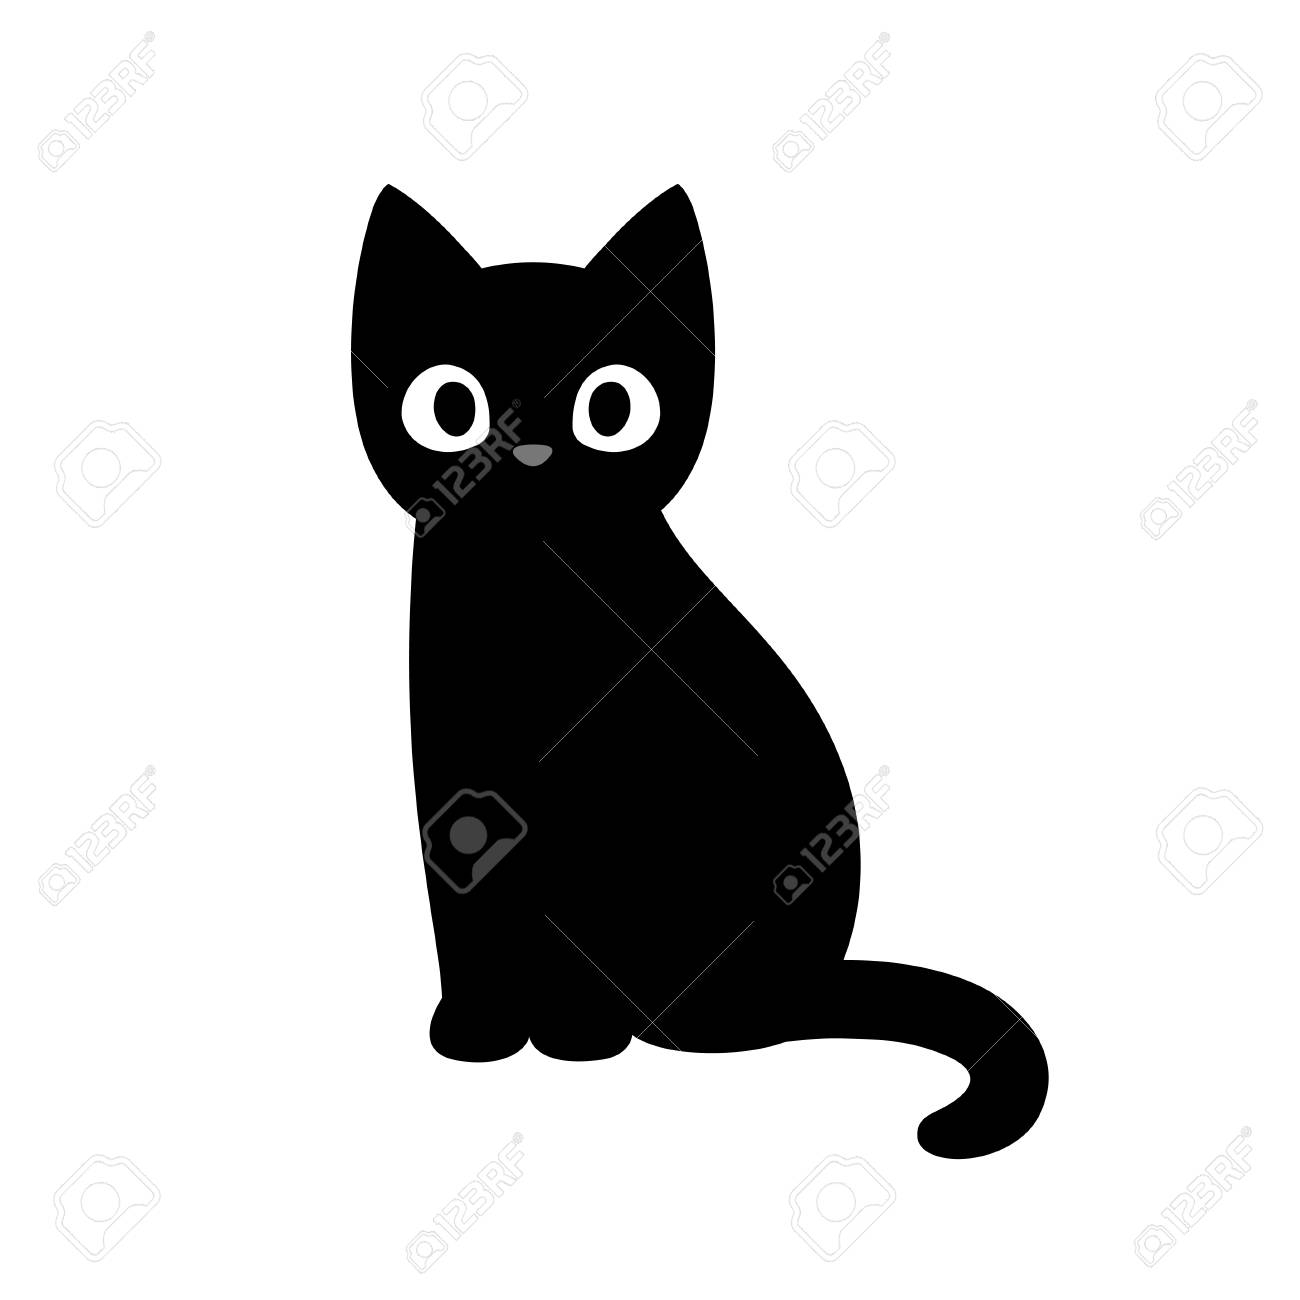 1300x1300 ideas daily sketch alert daily cat sketches cat silhouette